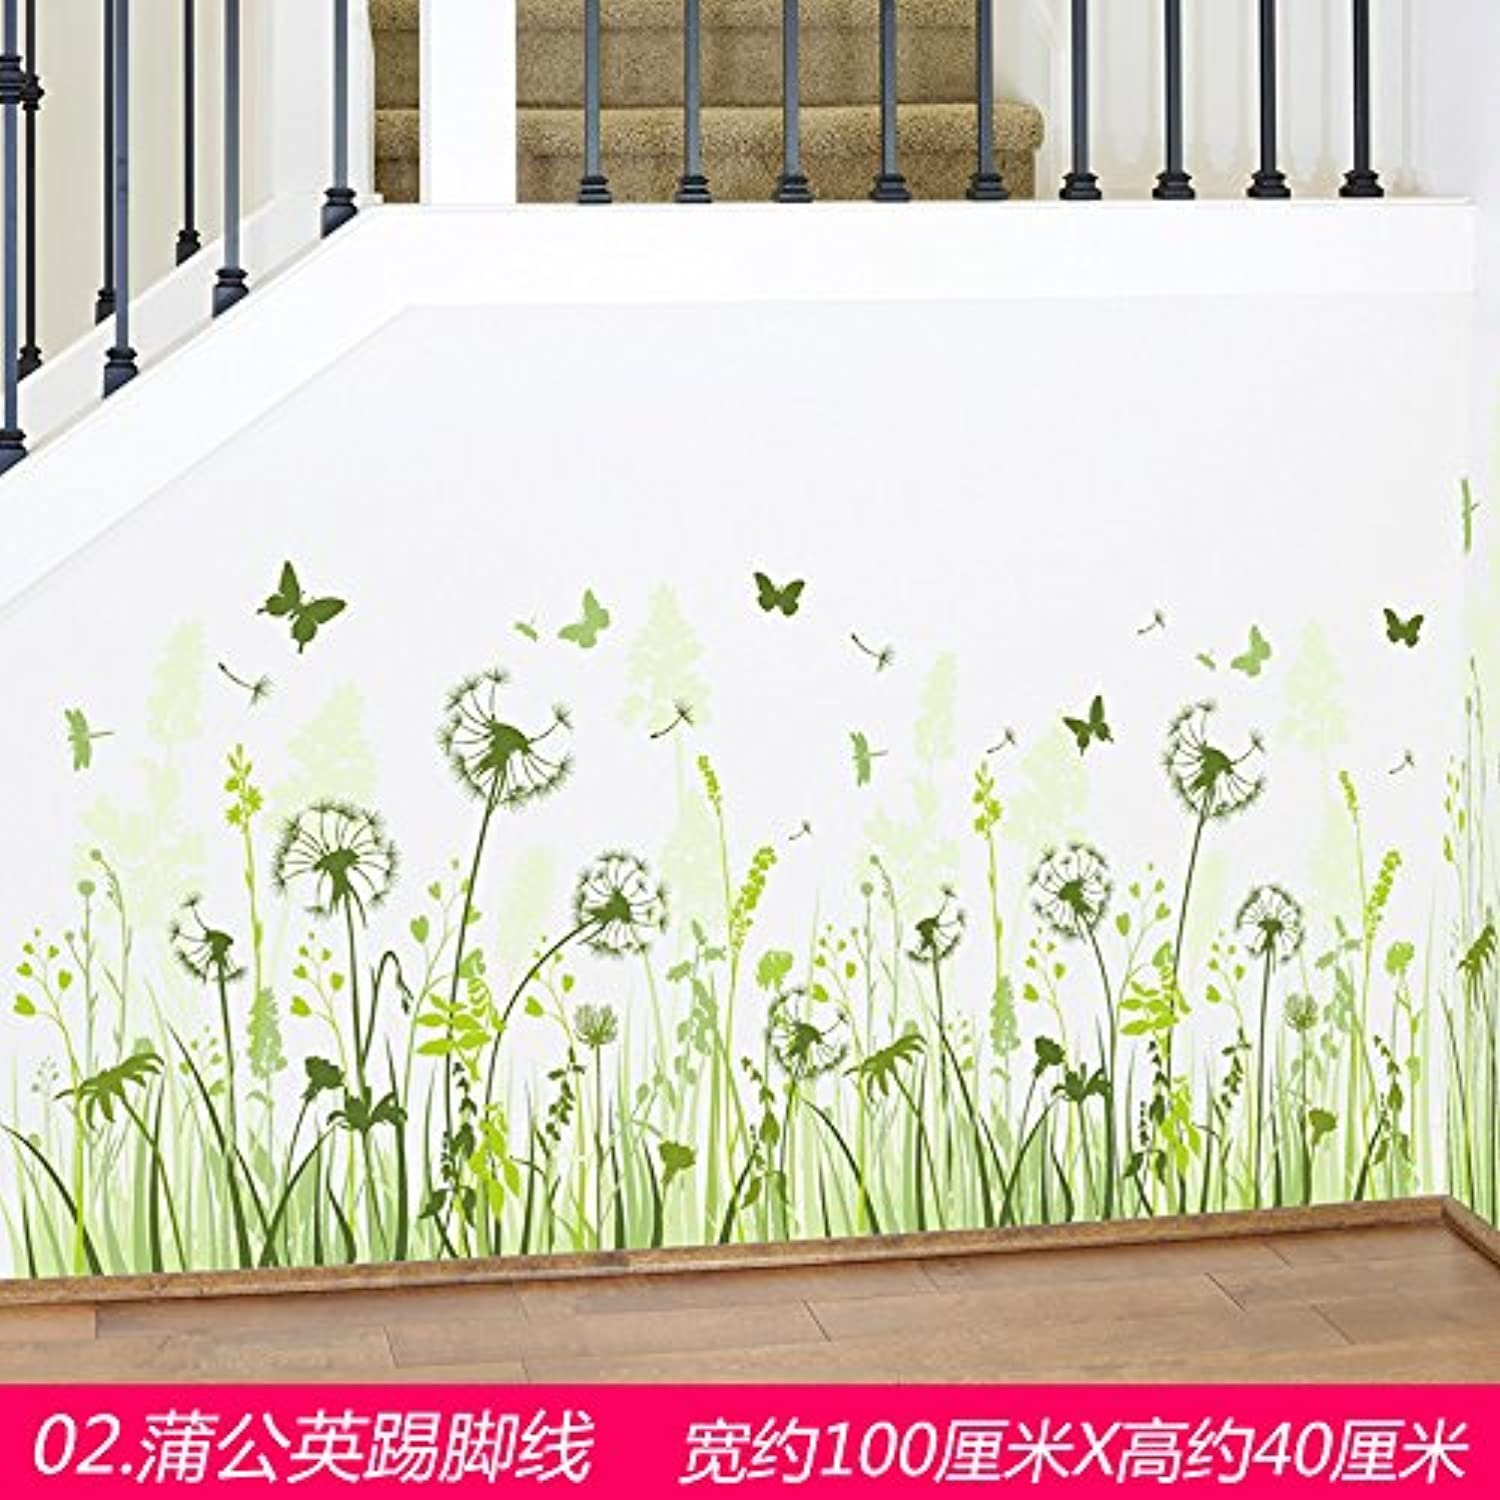 Znzbzt to Remove The Skirting The Wall Surface Decoration Wall Sticker Corner Stringcourse Posters Wallpaper self Adhesive, Dandelion